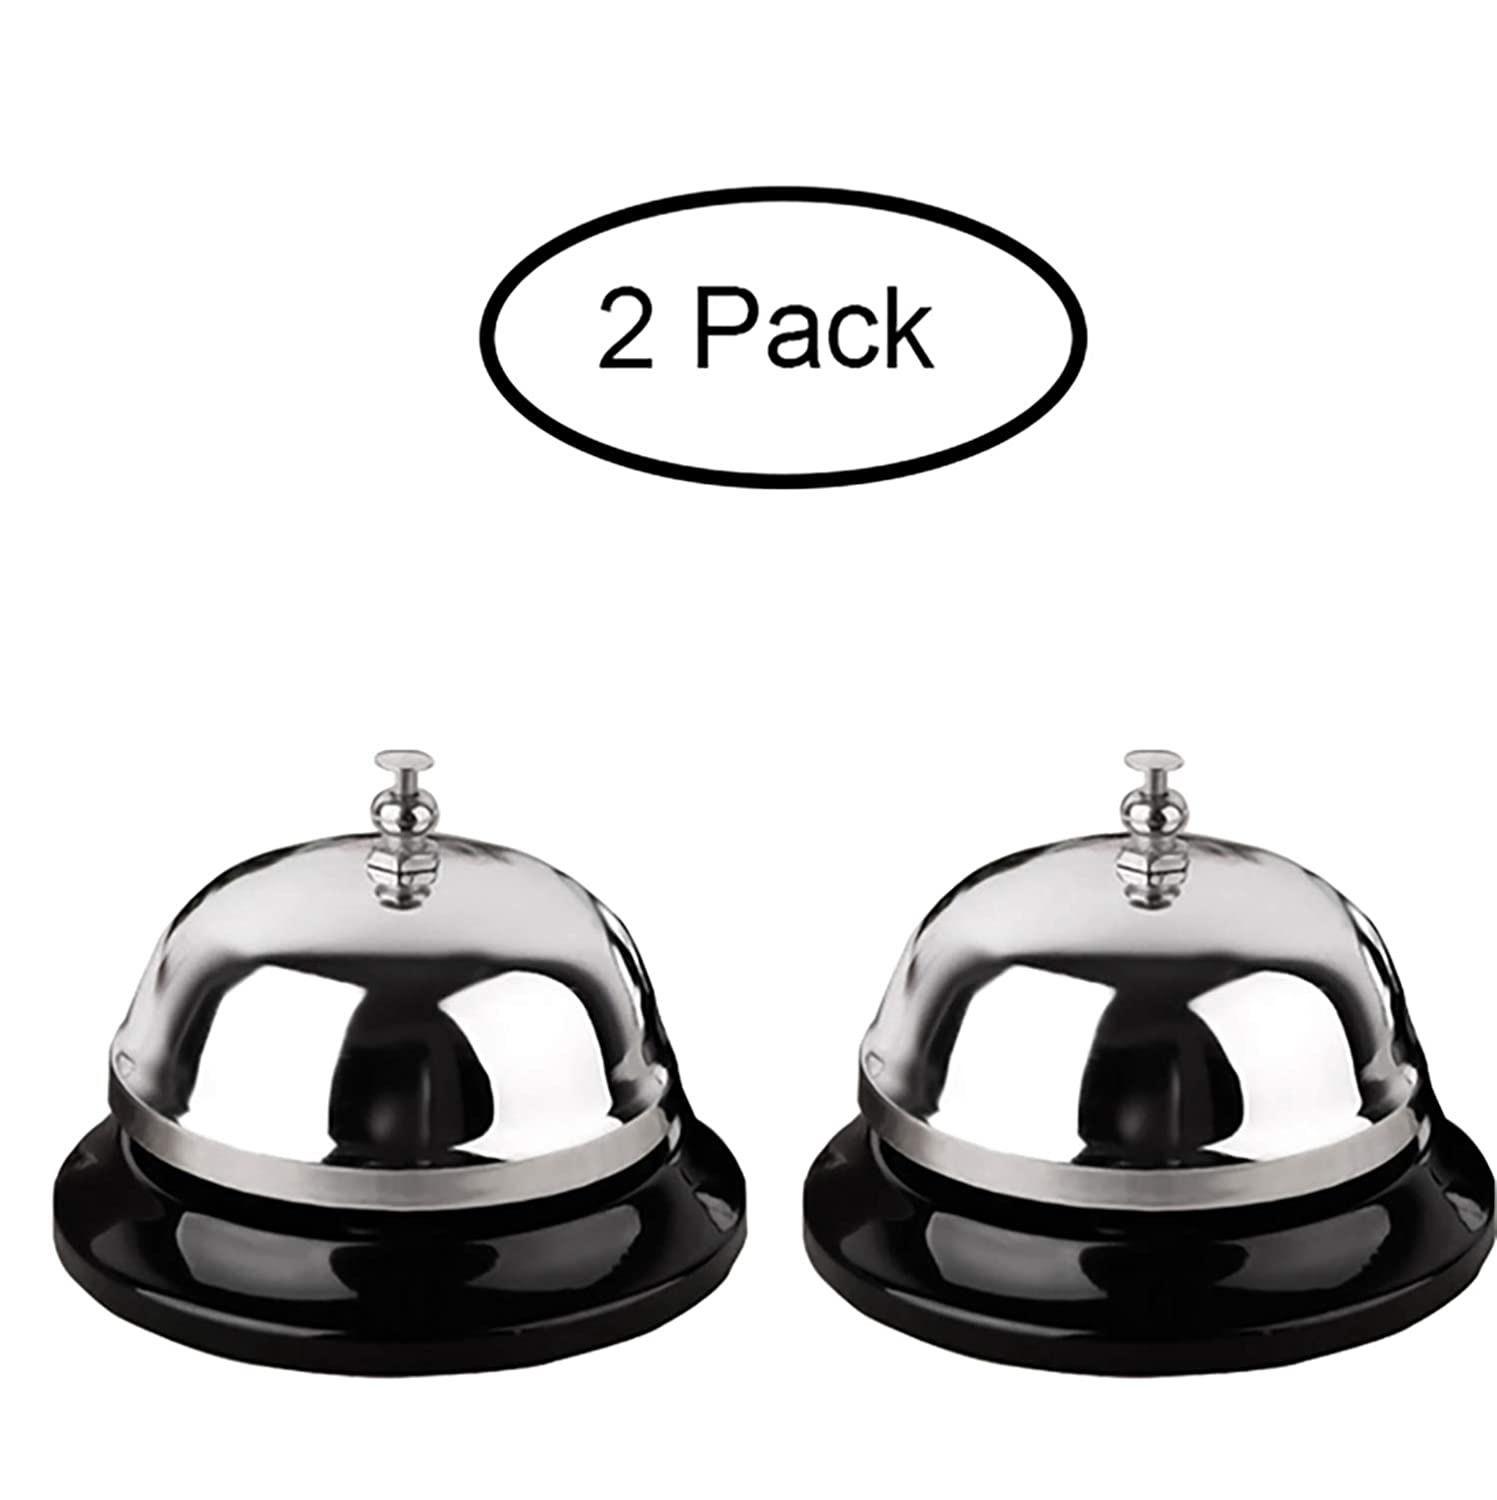 Call Bell 2 Packs 3.35 Inch Diameter with Metal Anti-Rust Construction, Ringing, Durable, Desk Bell Service Bell for Hotels, Schools, Restaurants, Reception Areas, Hospitals, Warehouses(Silver)